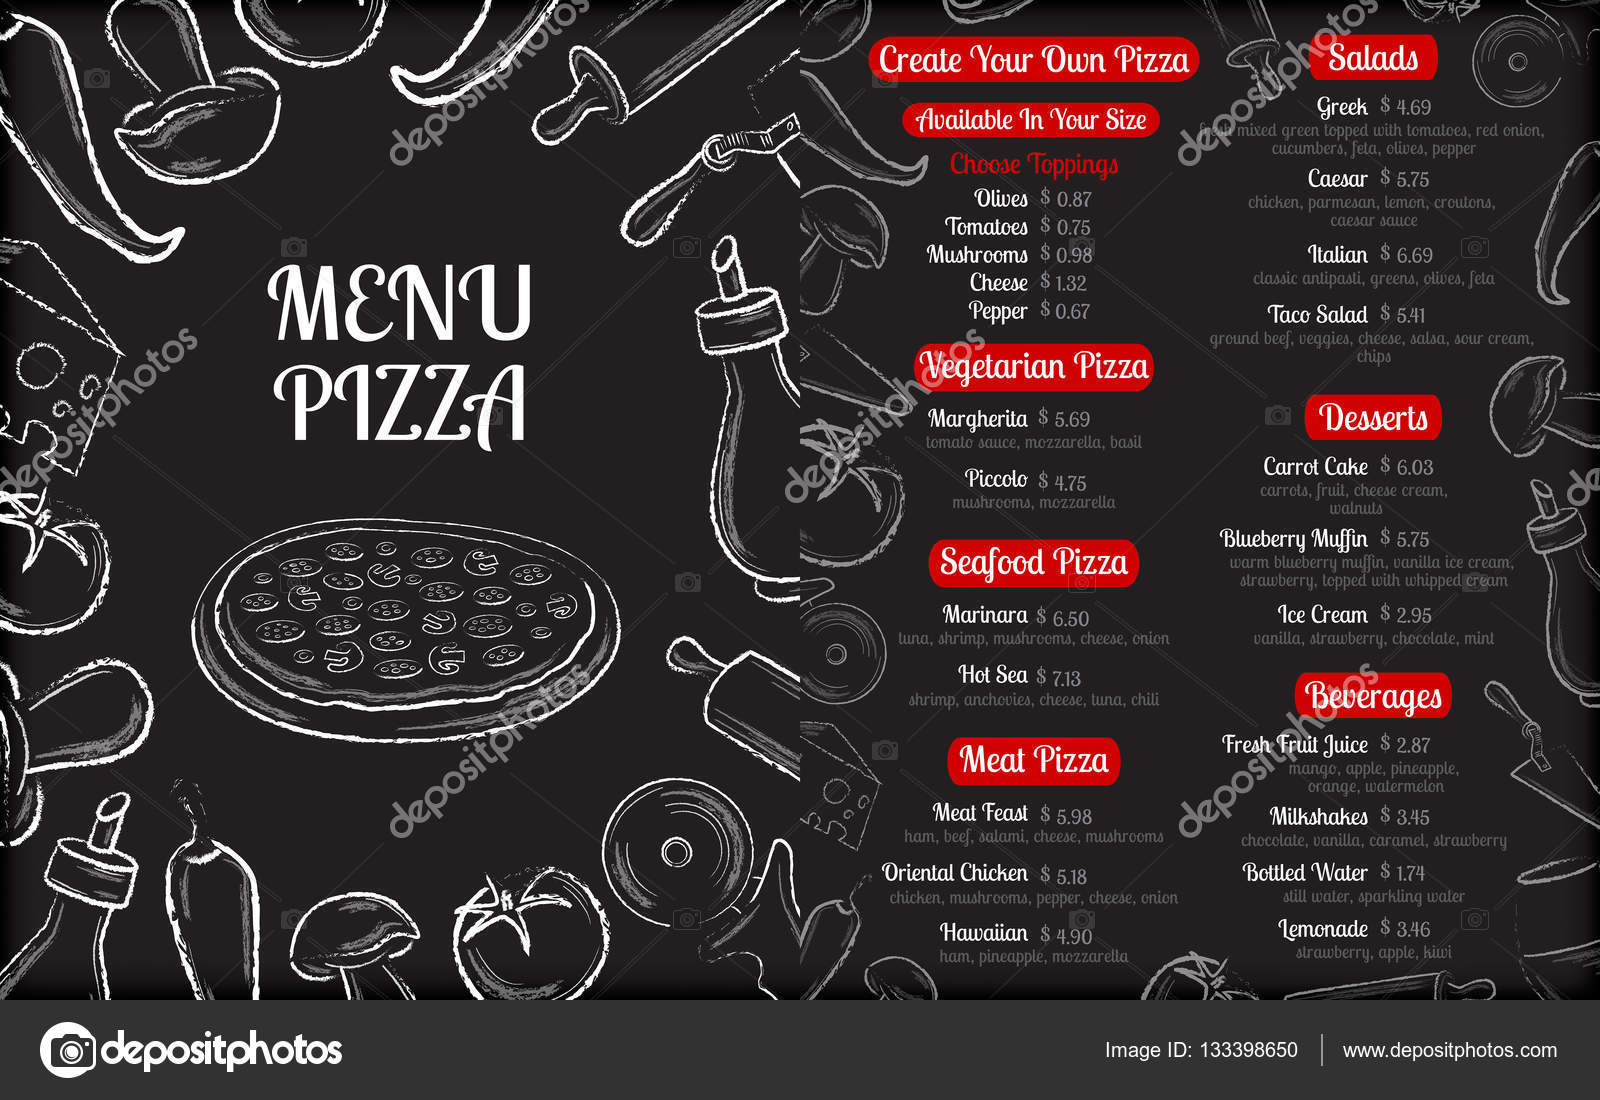 Pizza Cafe Menu Brochure Template With White Hand Drawn Ingredients On Black Chalkboard Background Vector Illustration By BananUlya